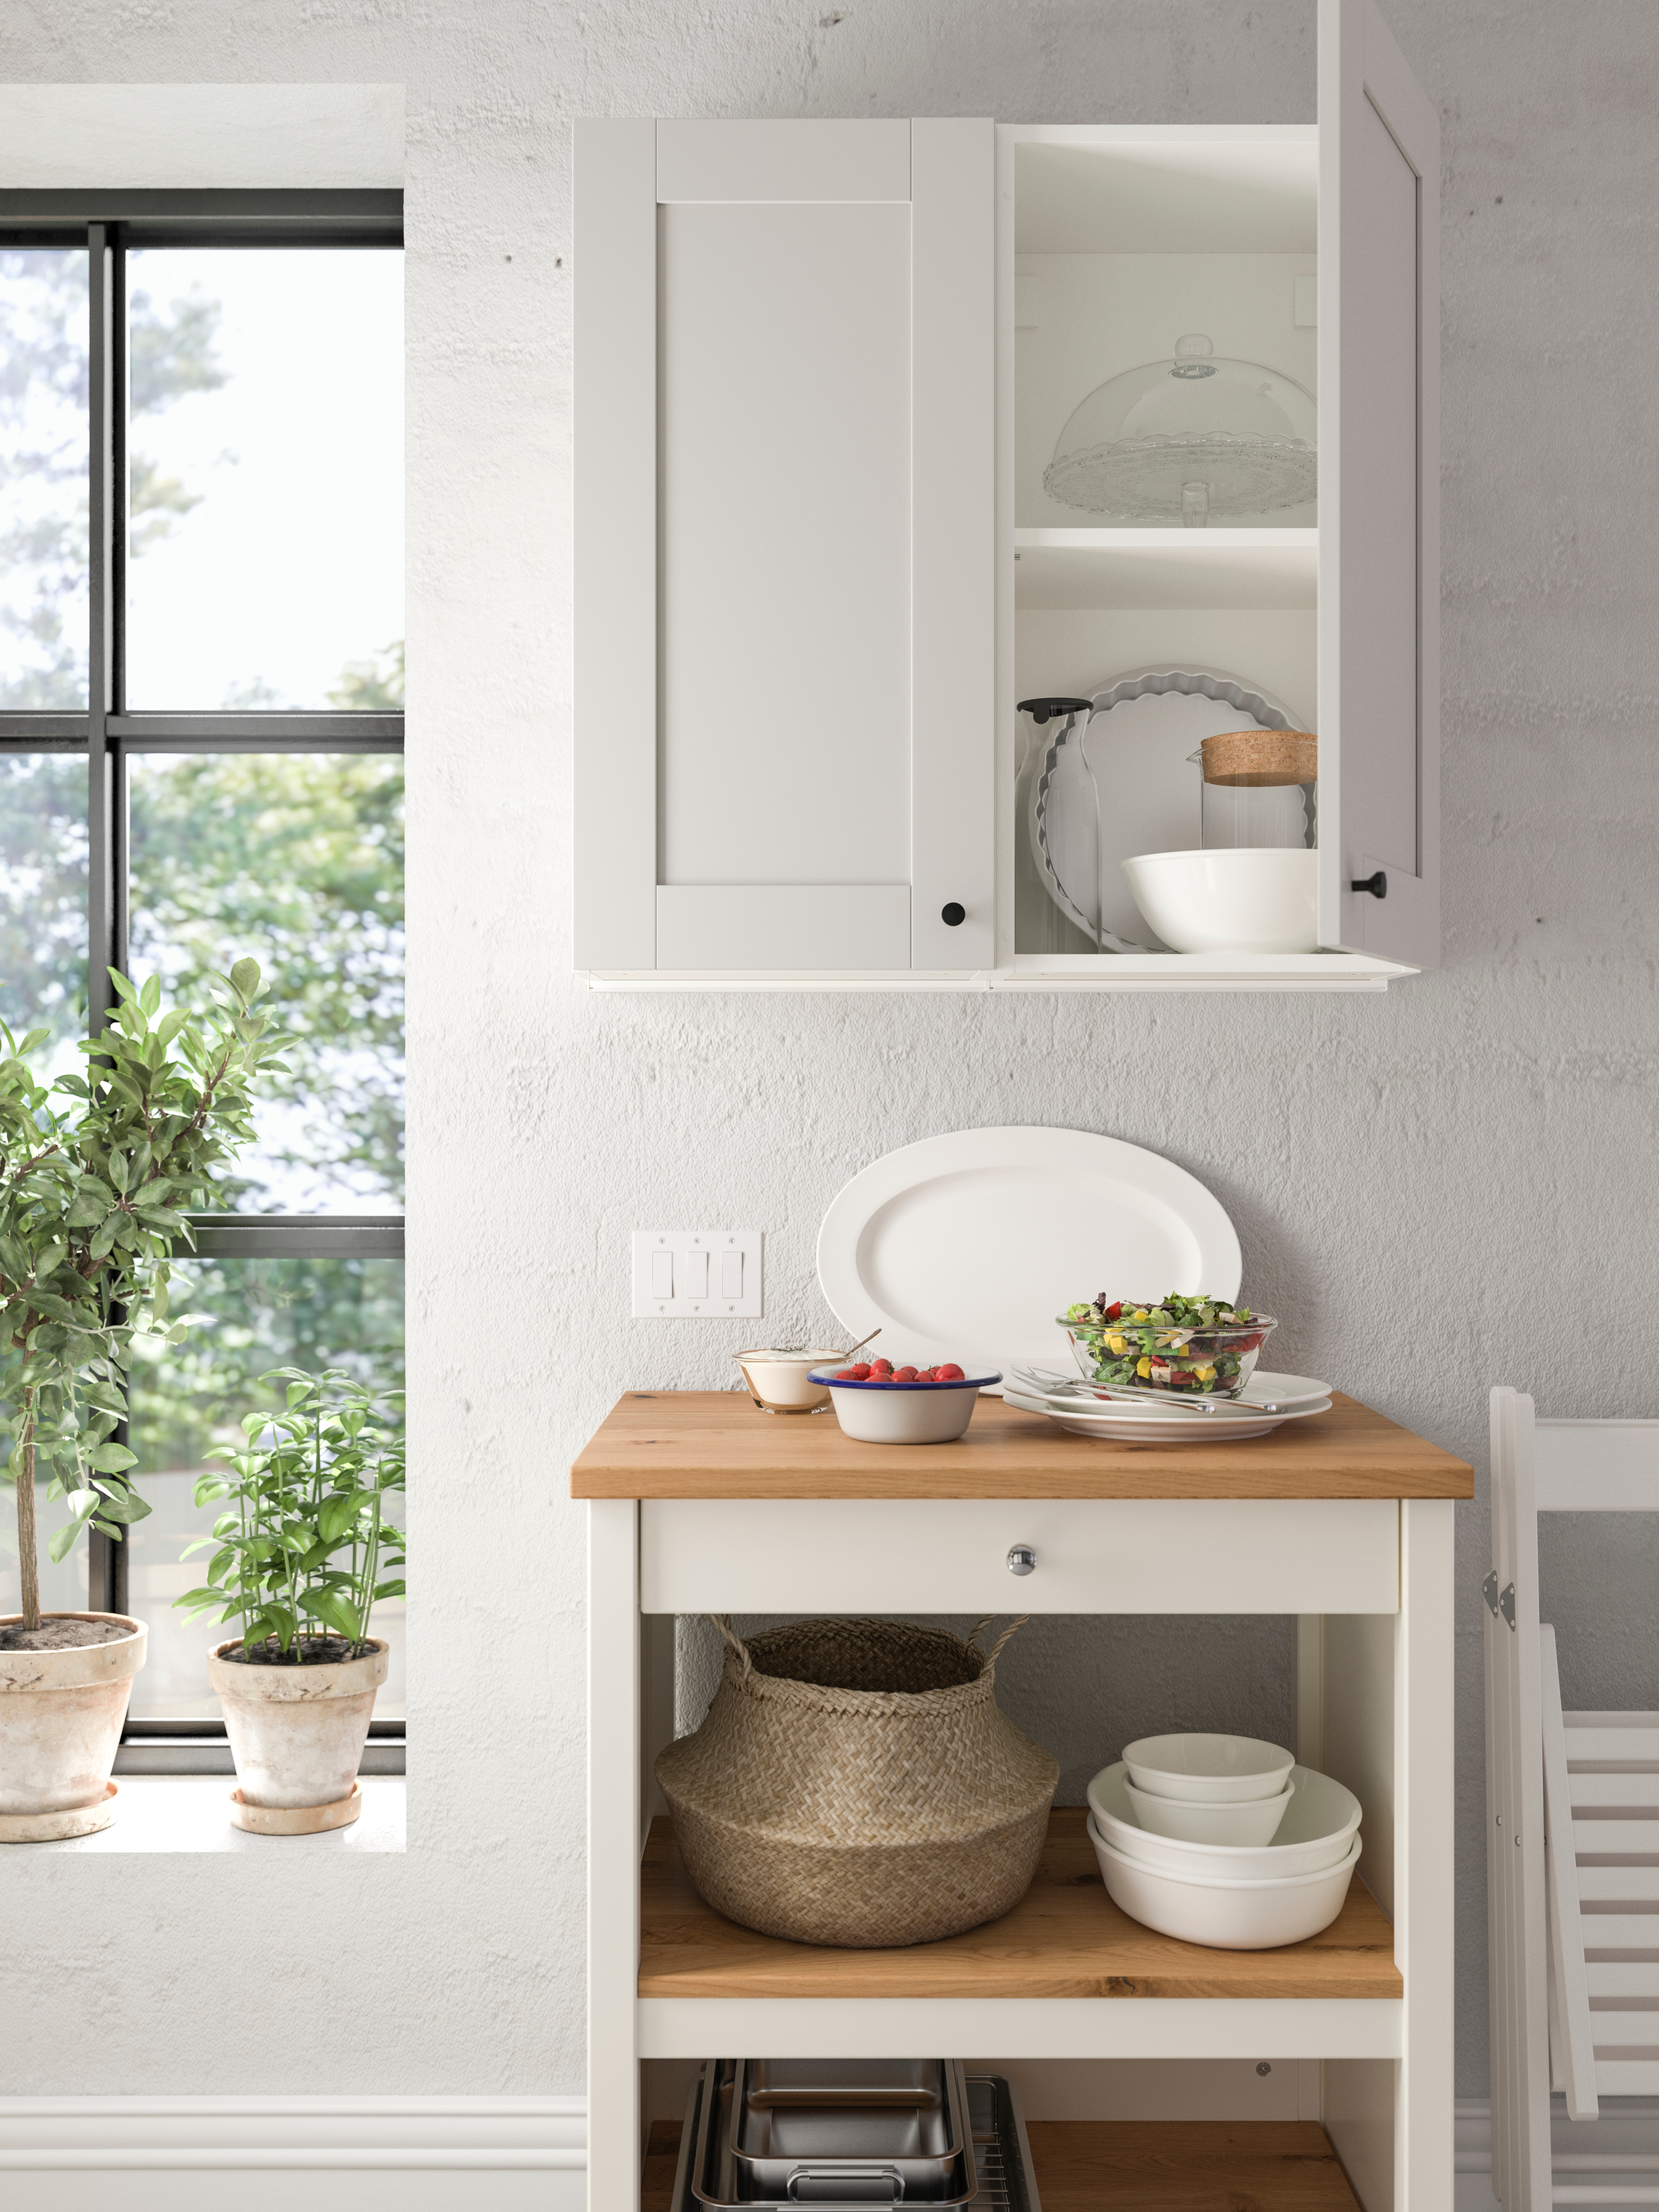 White kitchen with wooden kitchen island, wall cabinet with two doors, basket, serving plate, bowls and dinnerware.